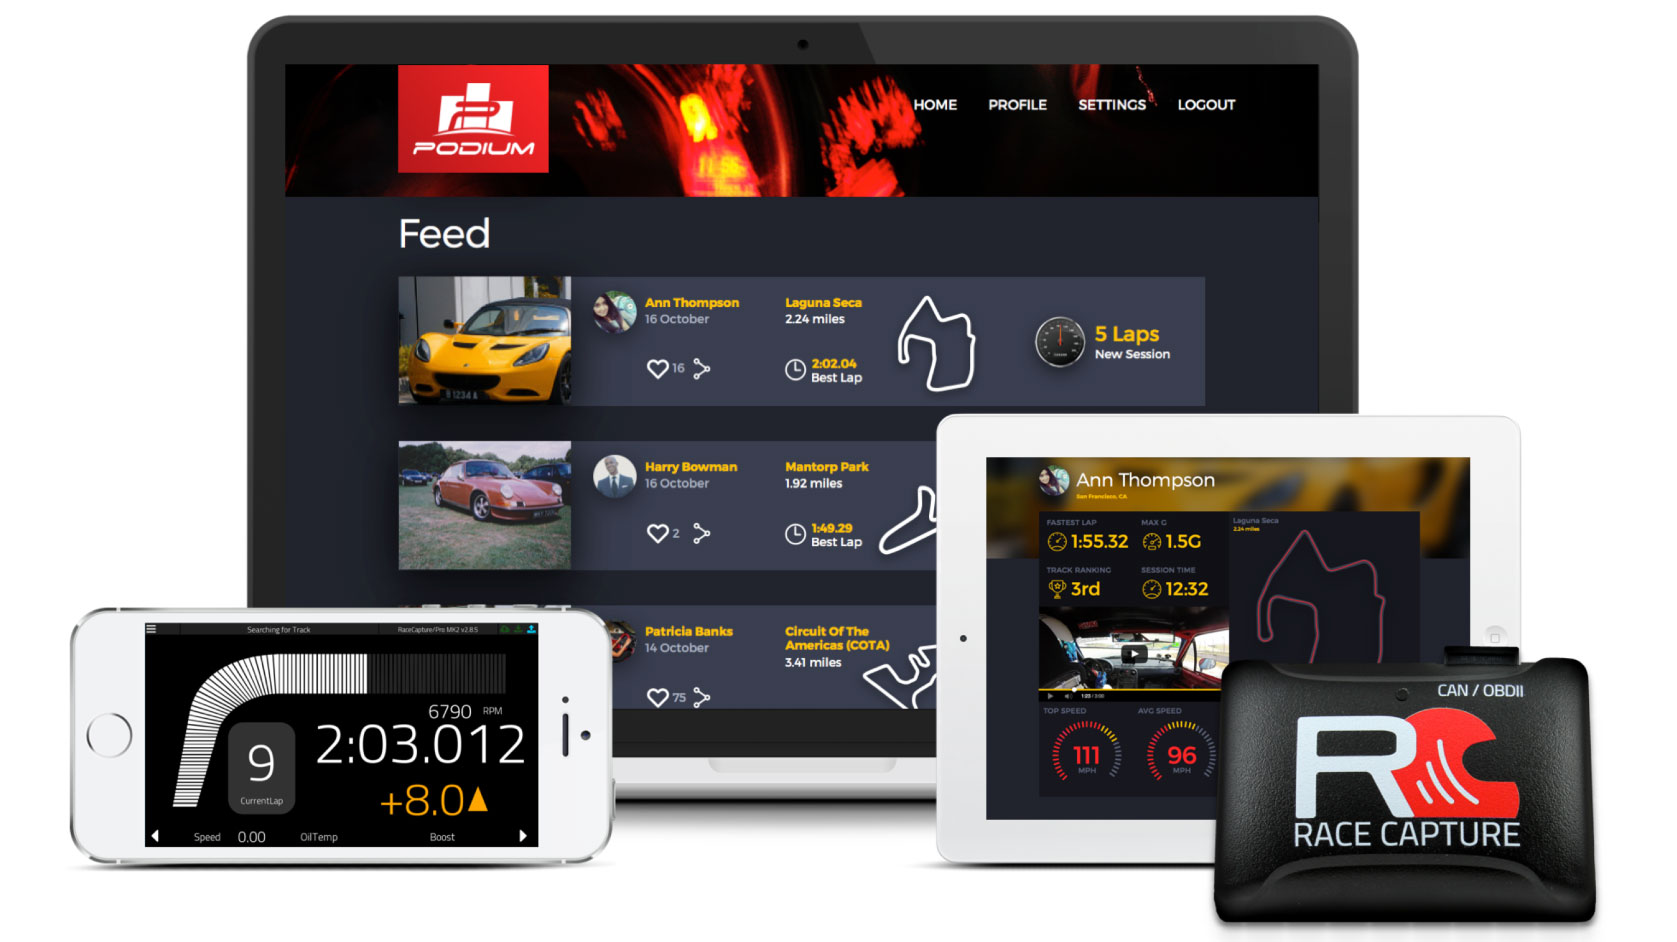 RaceCapture lets enthusiasts obsess over every little driving detail